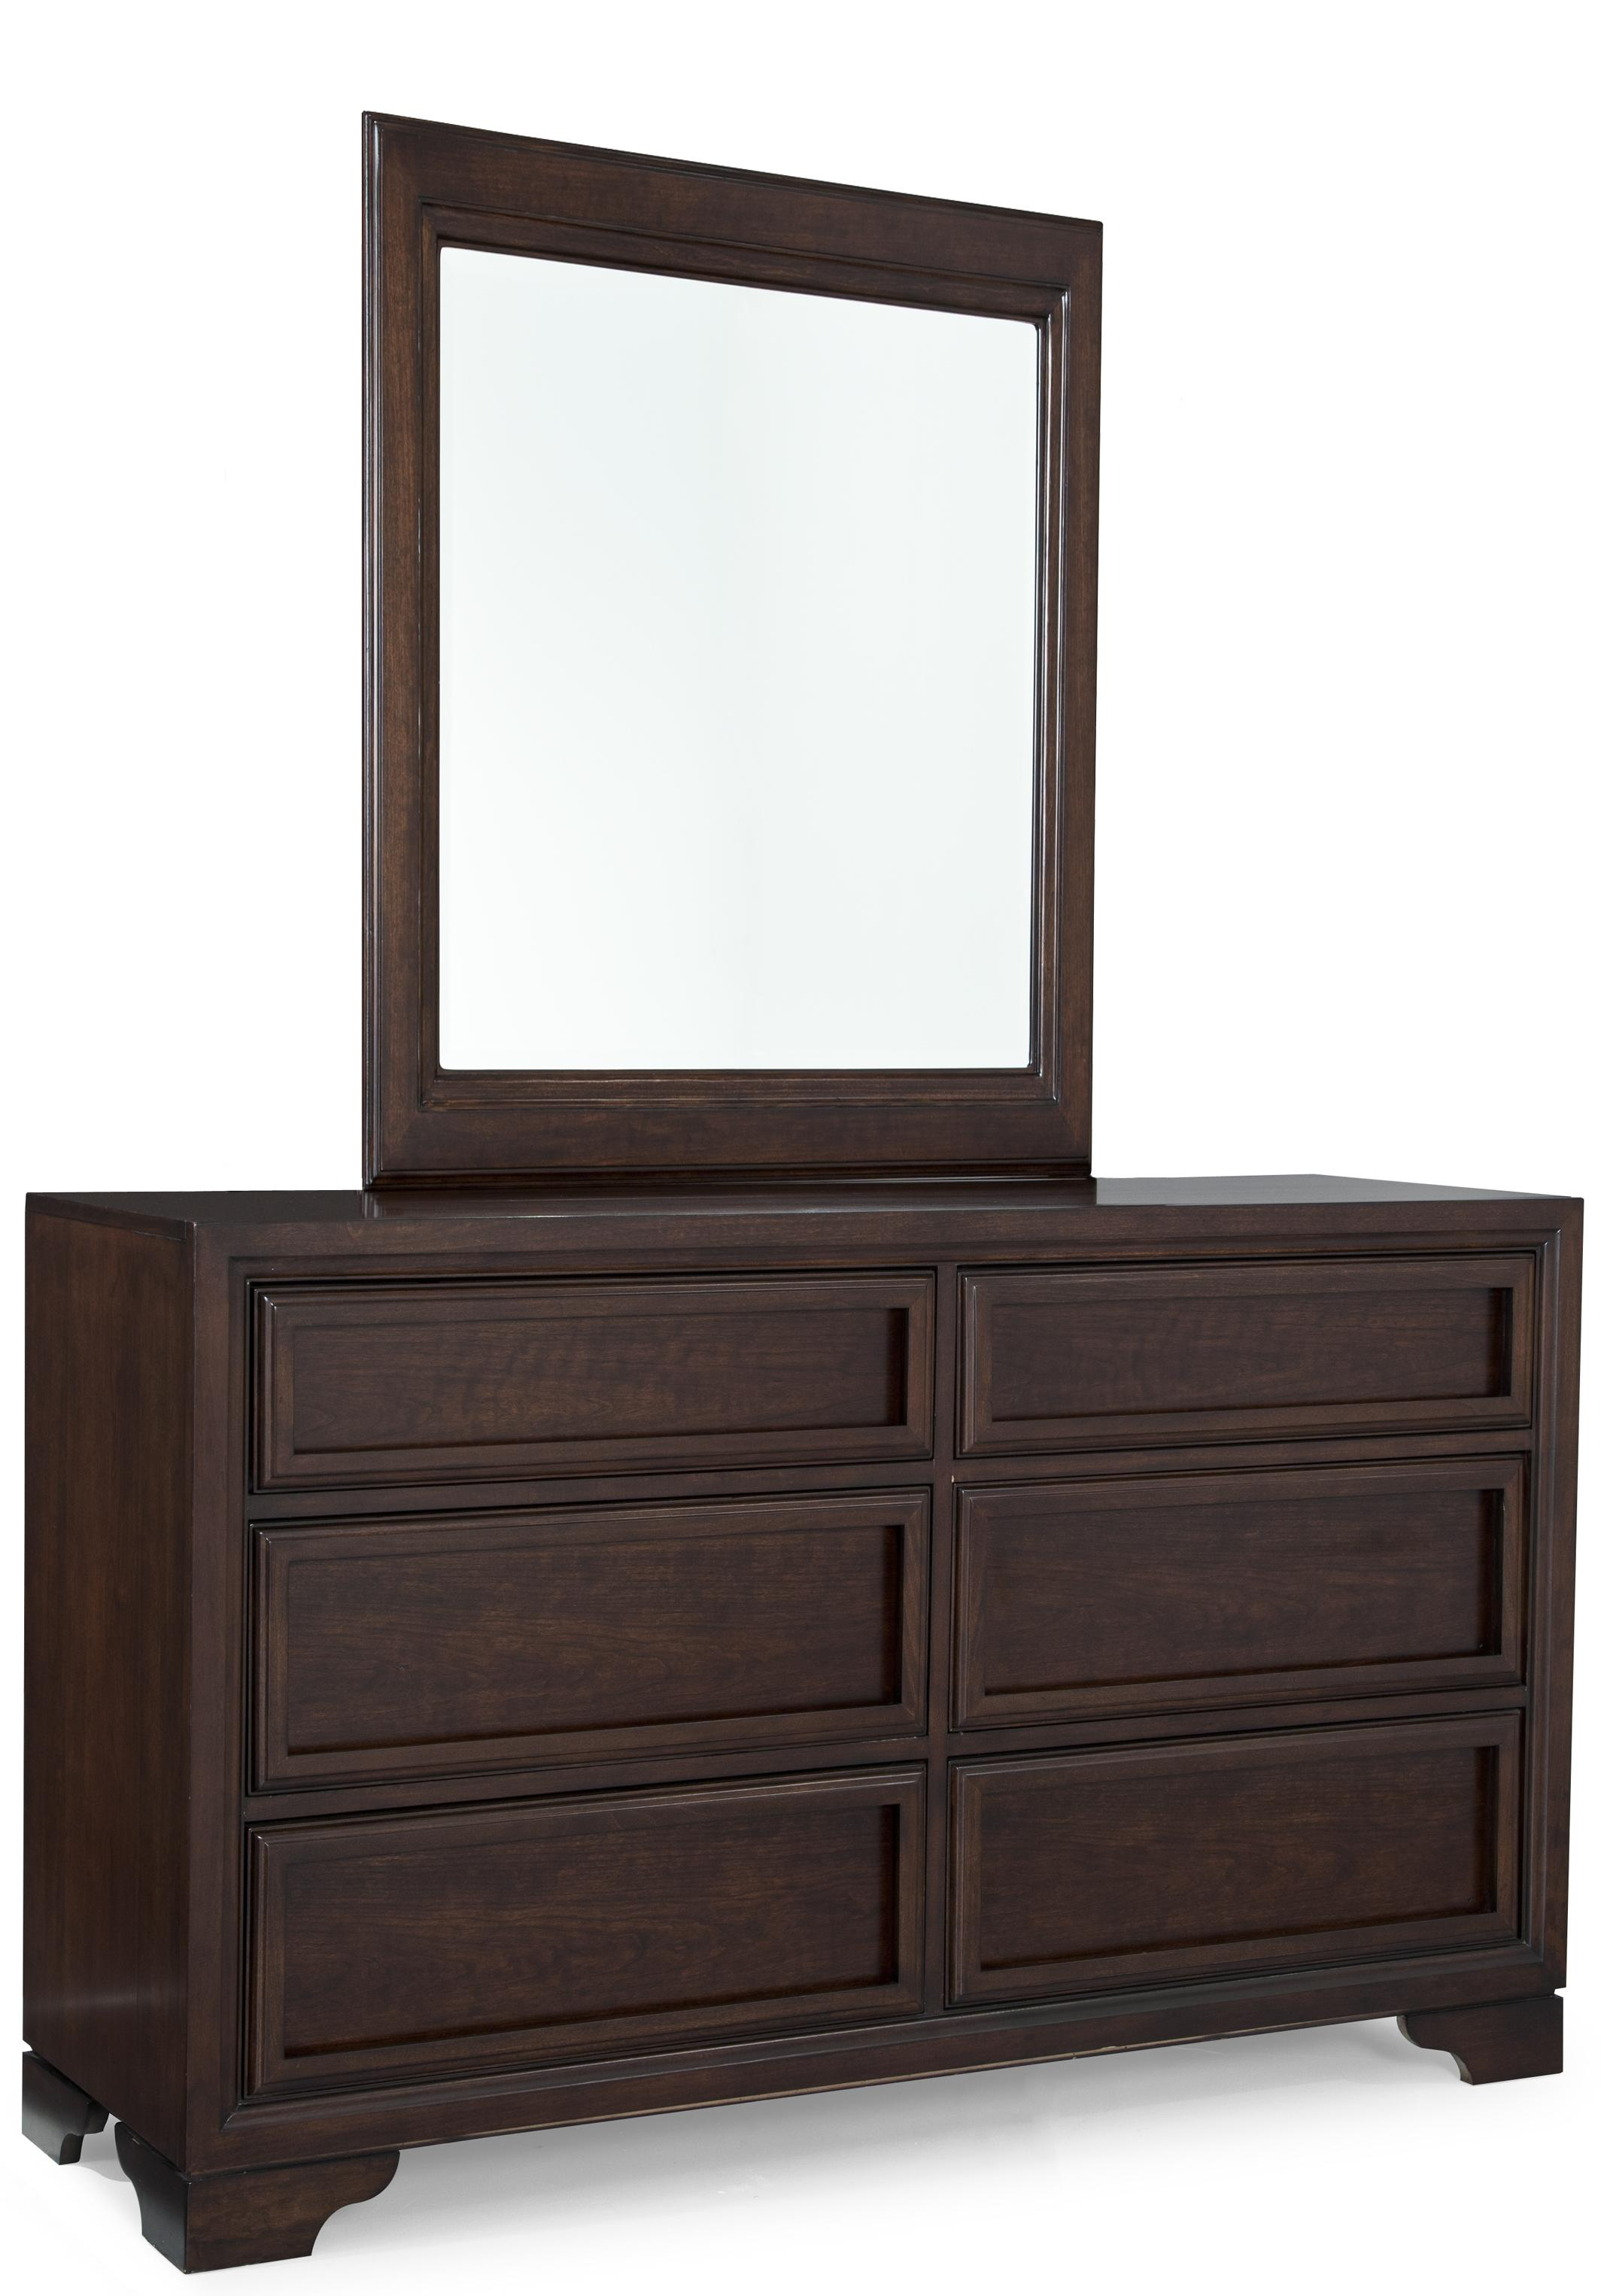 Legacy Classic Kids Benchmark Dresser and Mirror Set - Item Number: 2970-1100+0100